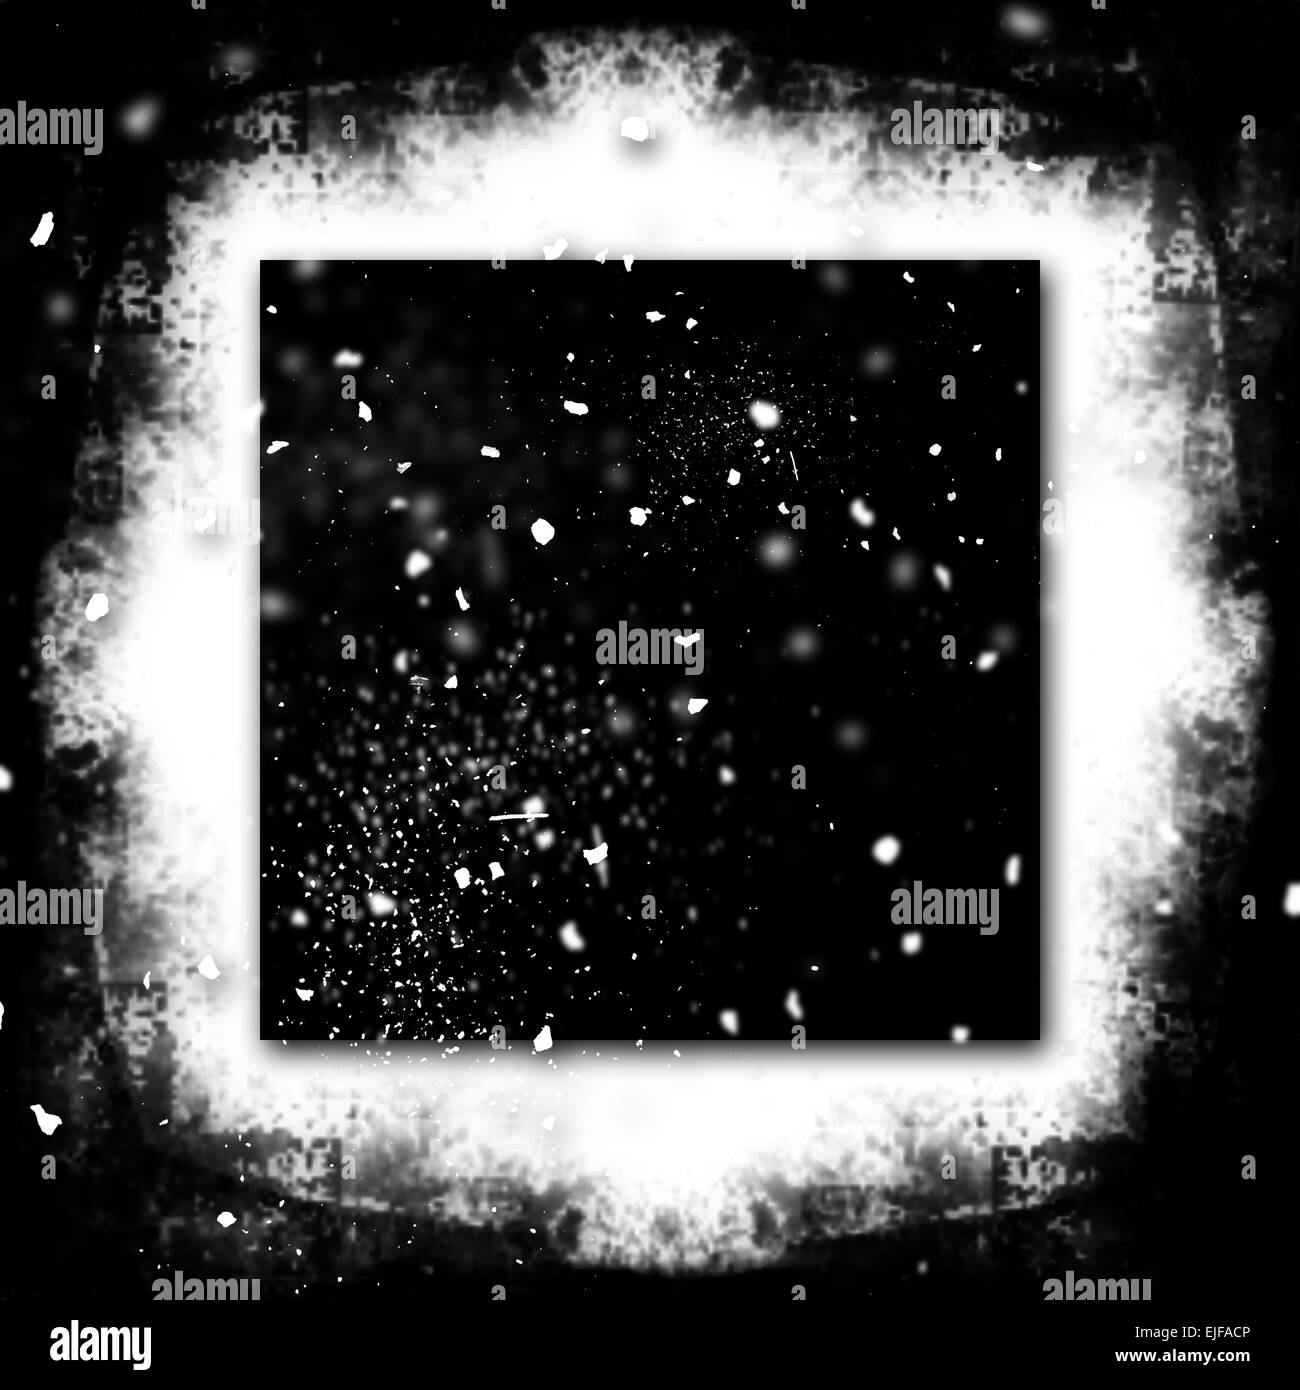 Exploding Grunge Photo Frame Black and White Particles - Stock Image